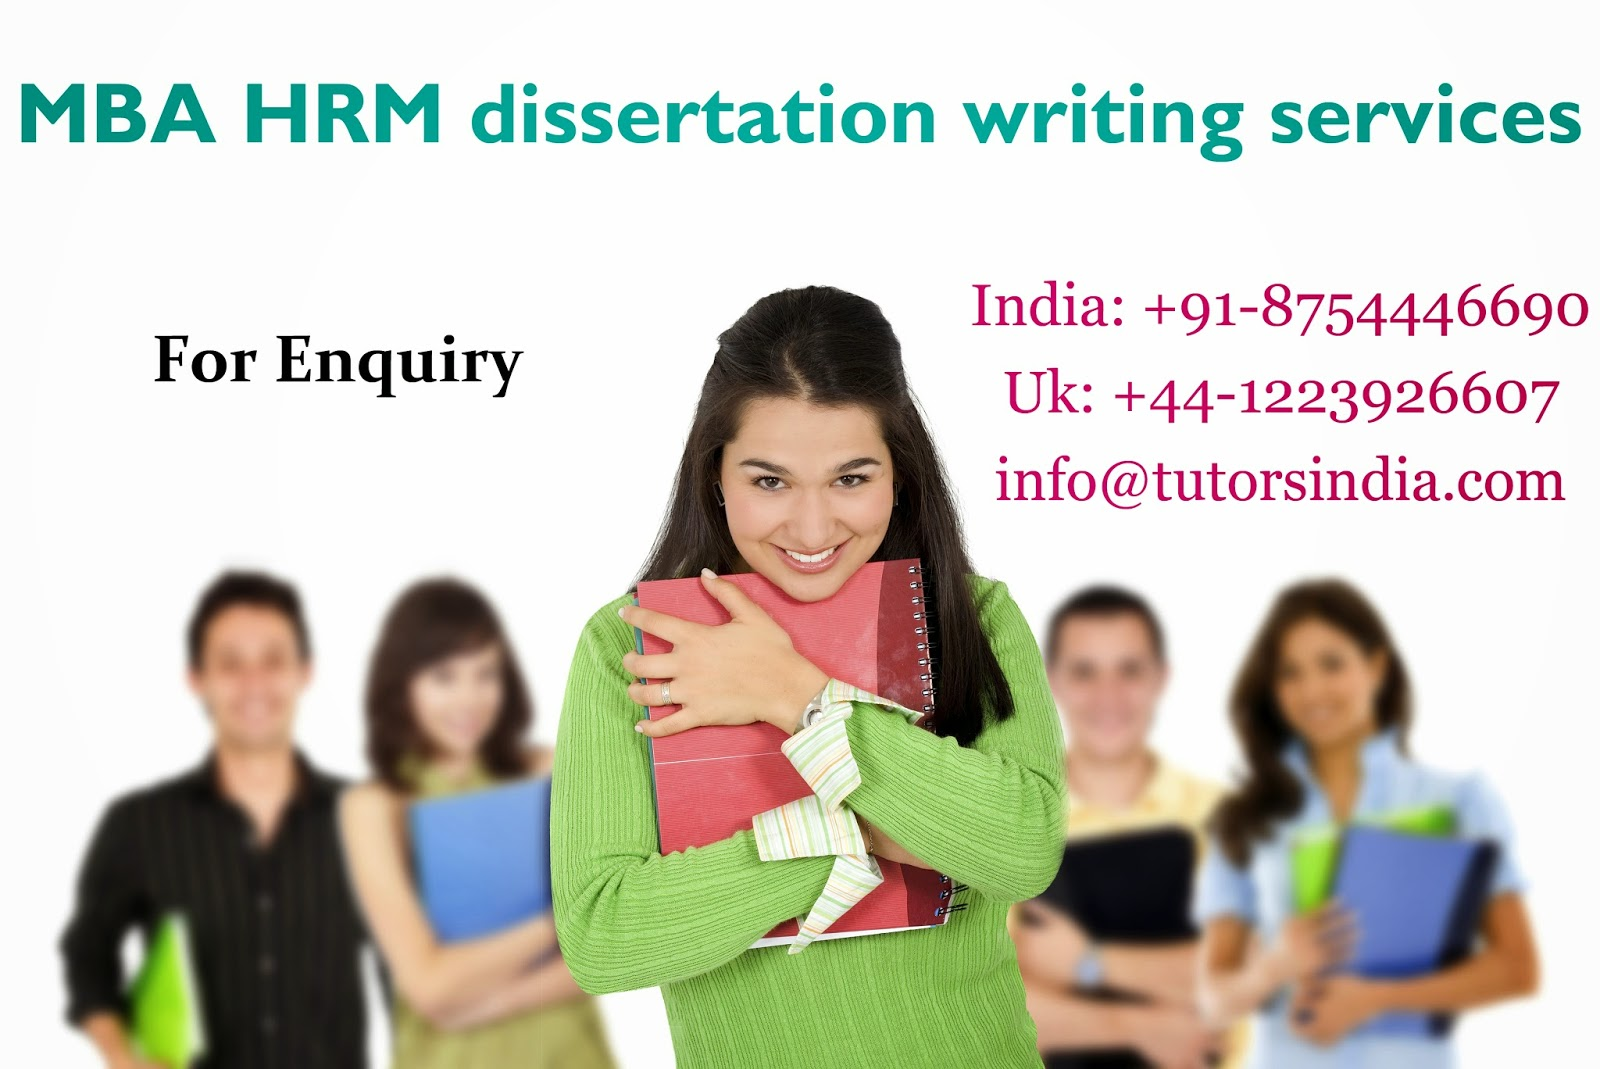 Get the Best Features with Our Dissertation Writing Services